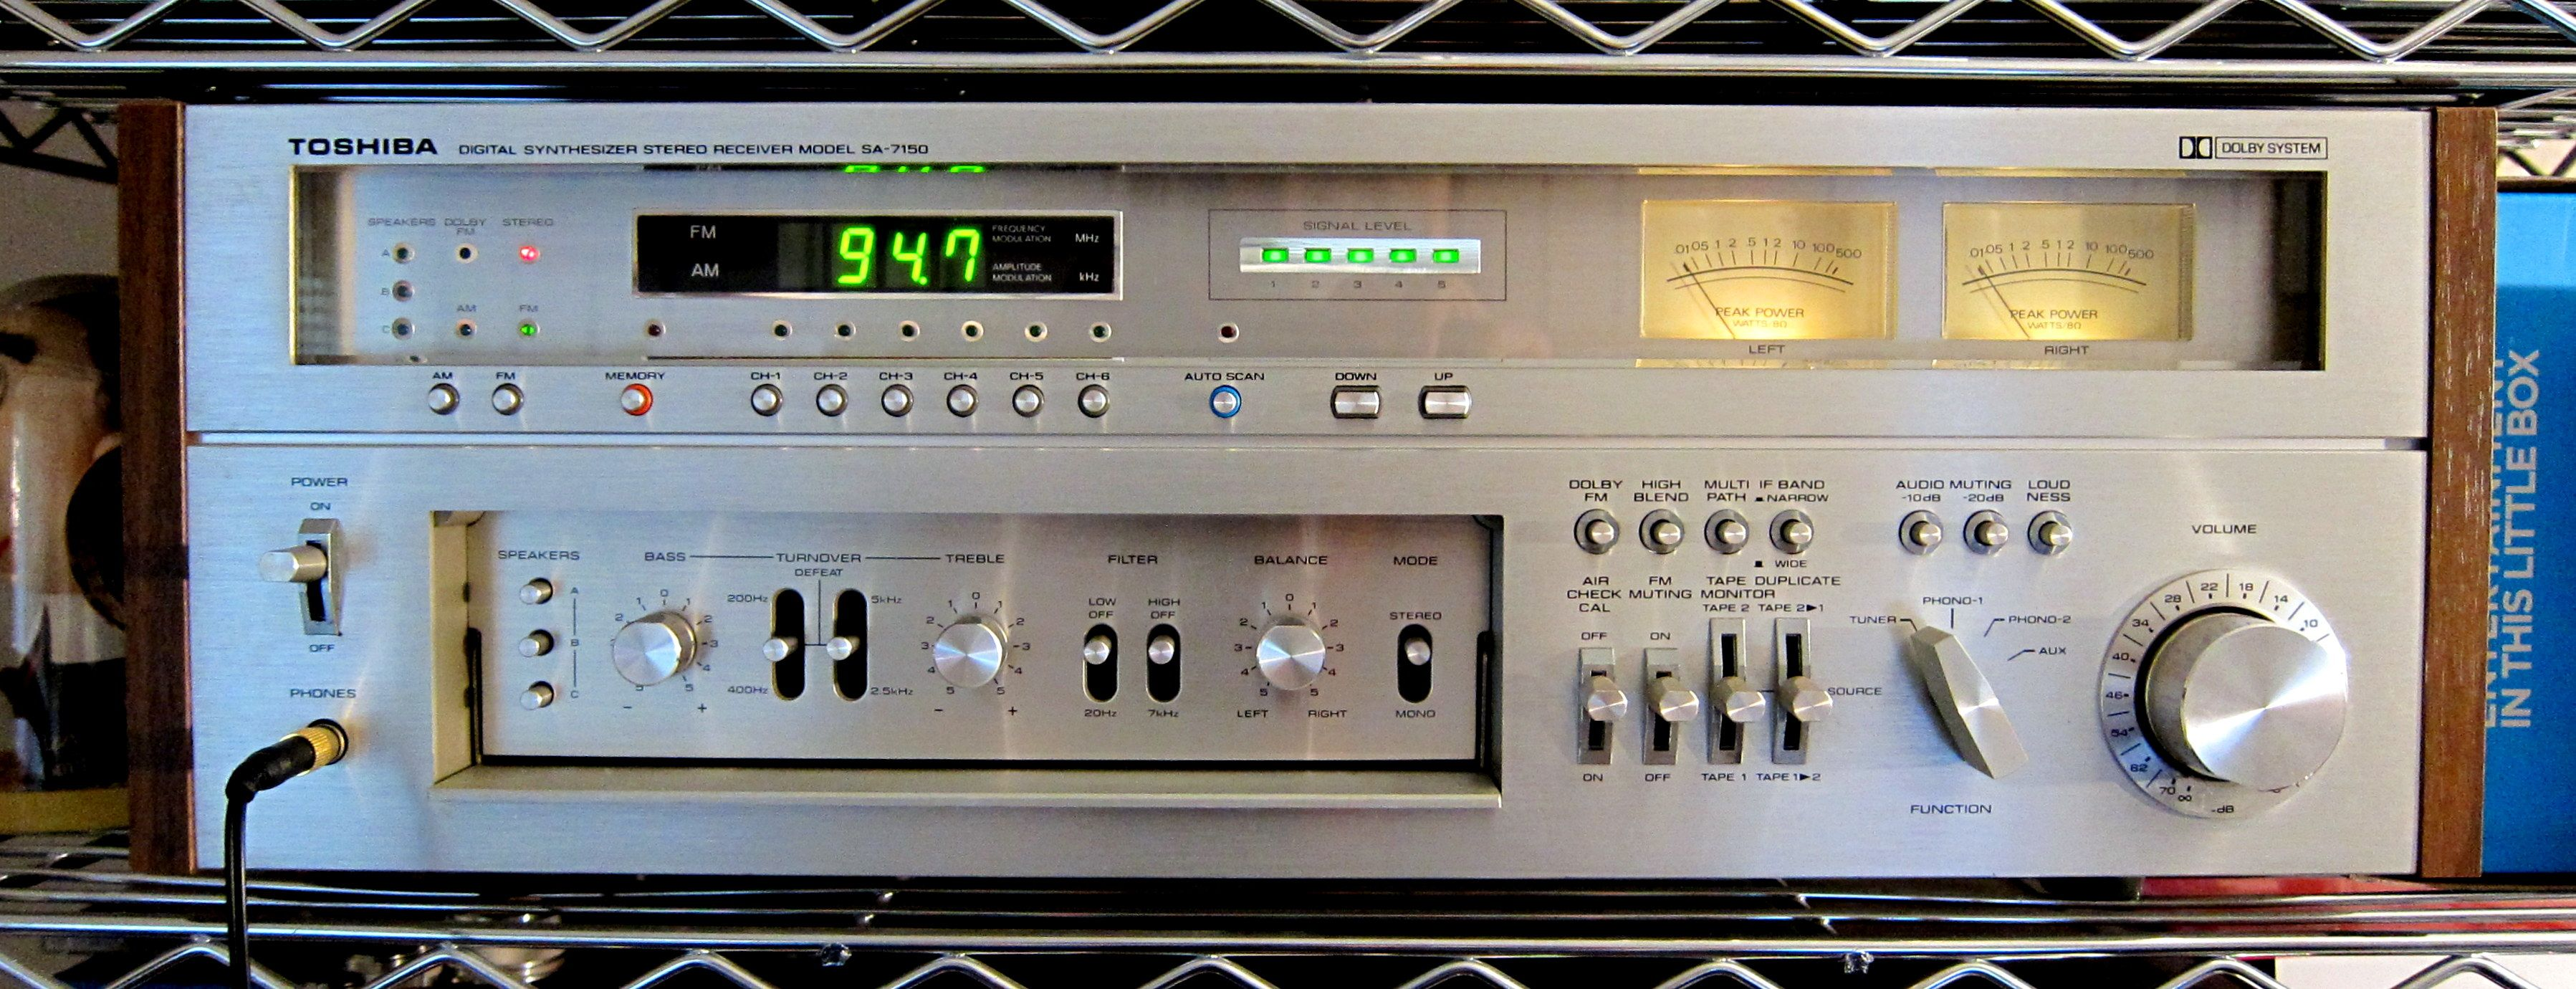 Toshiba SA-7150, first production Receiver with all digital tuning